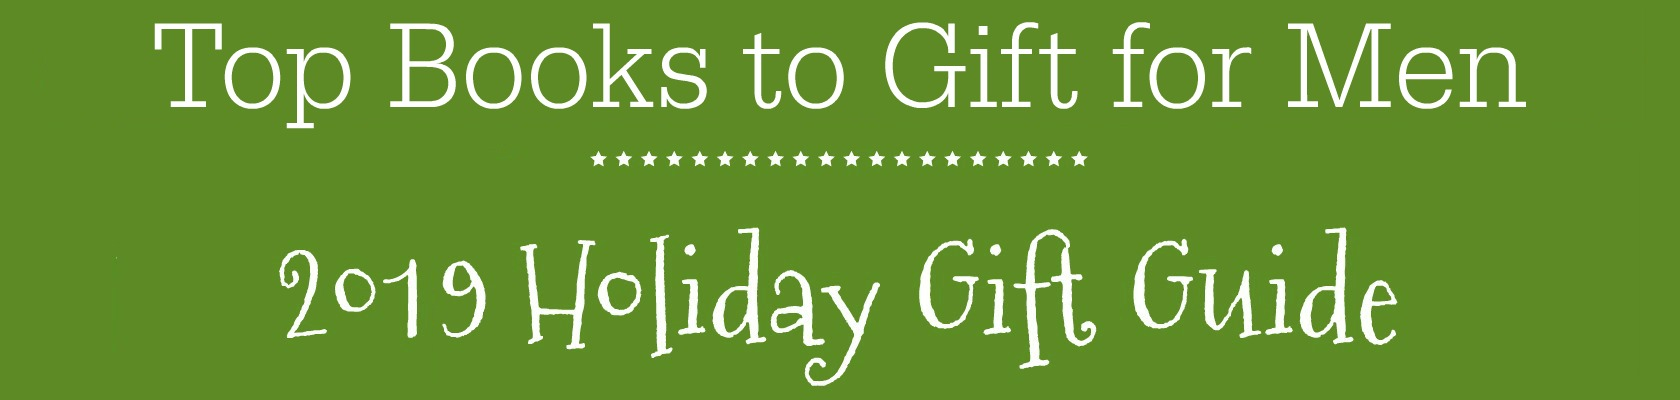 Books for Men Holiday Gift Guide